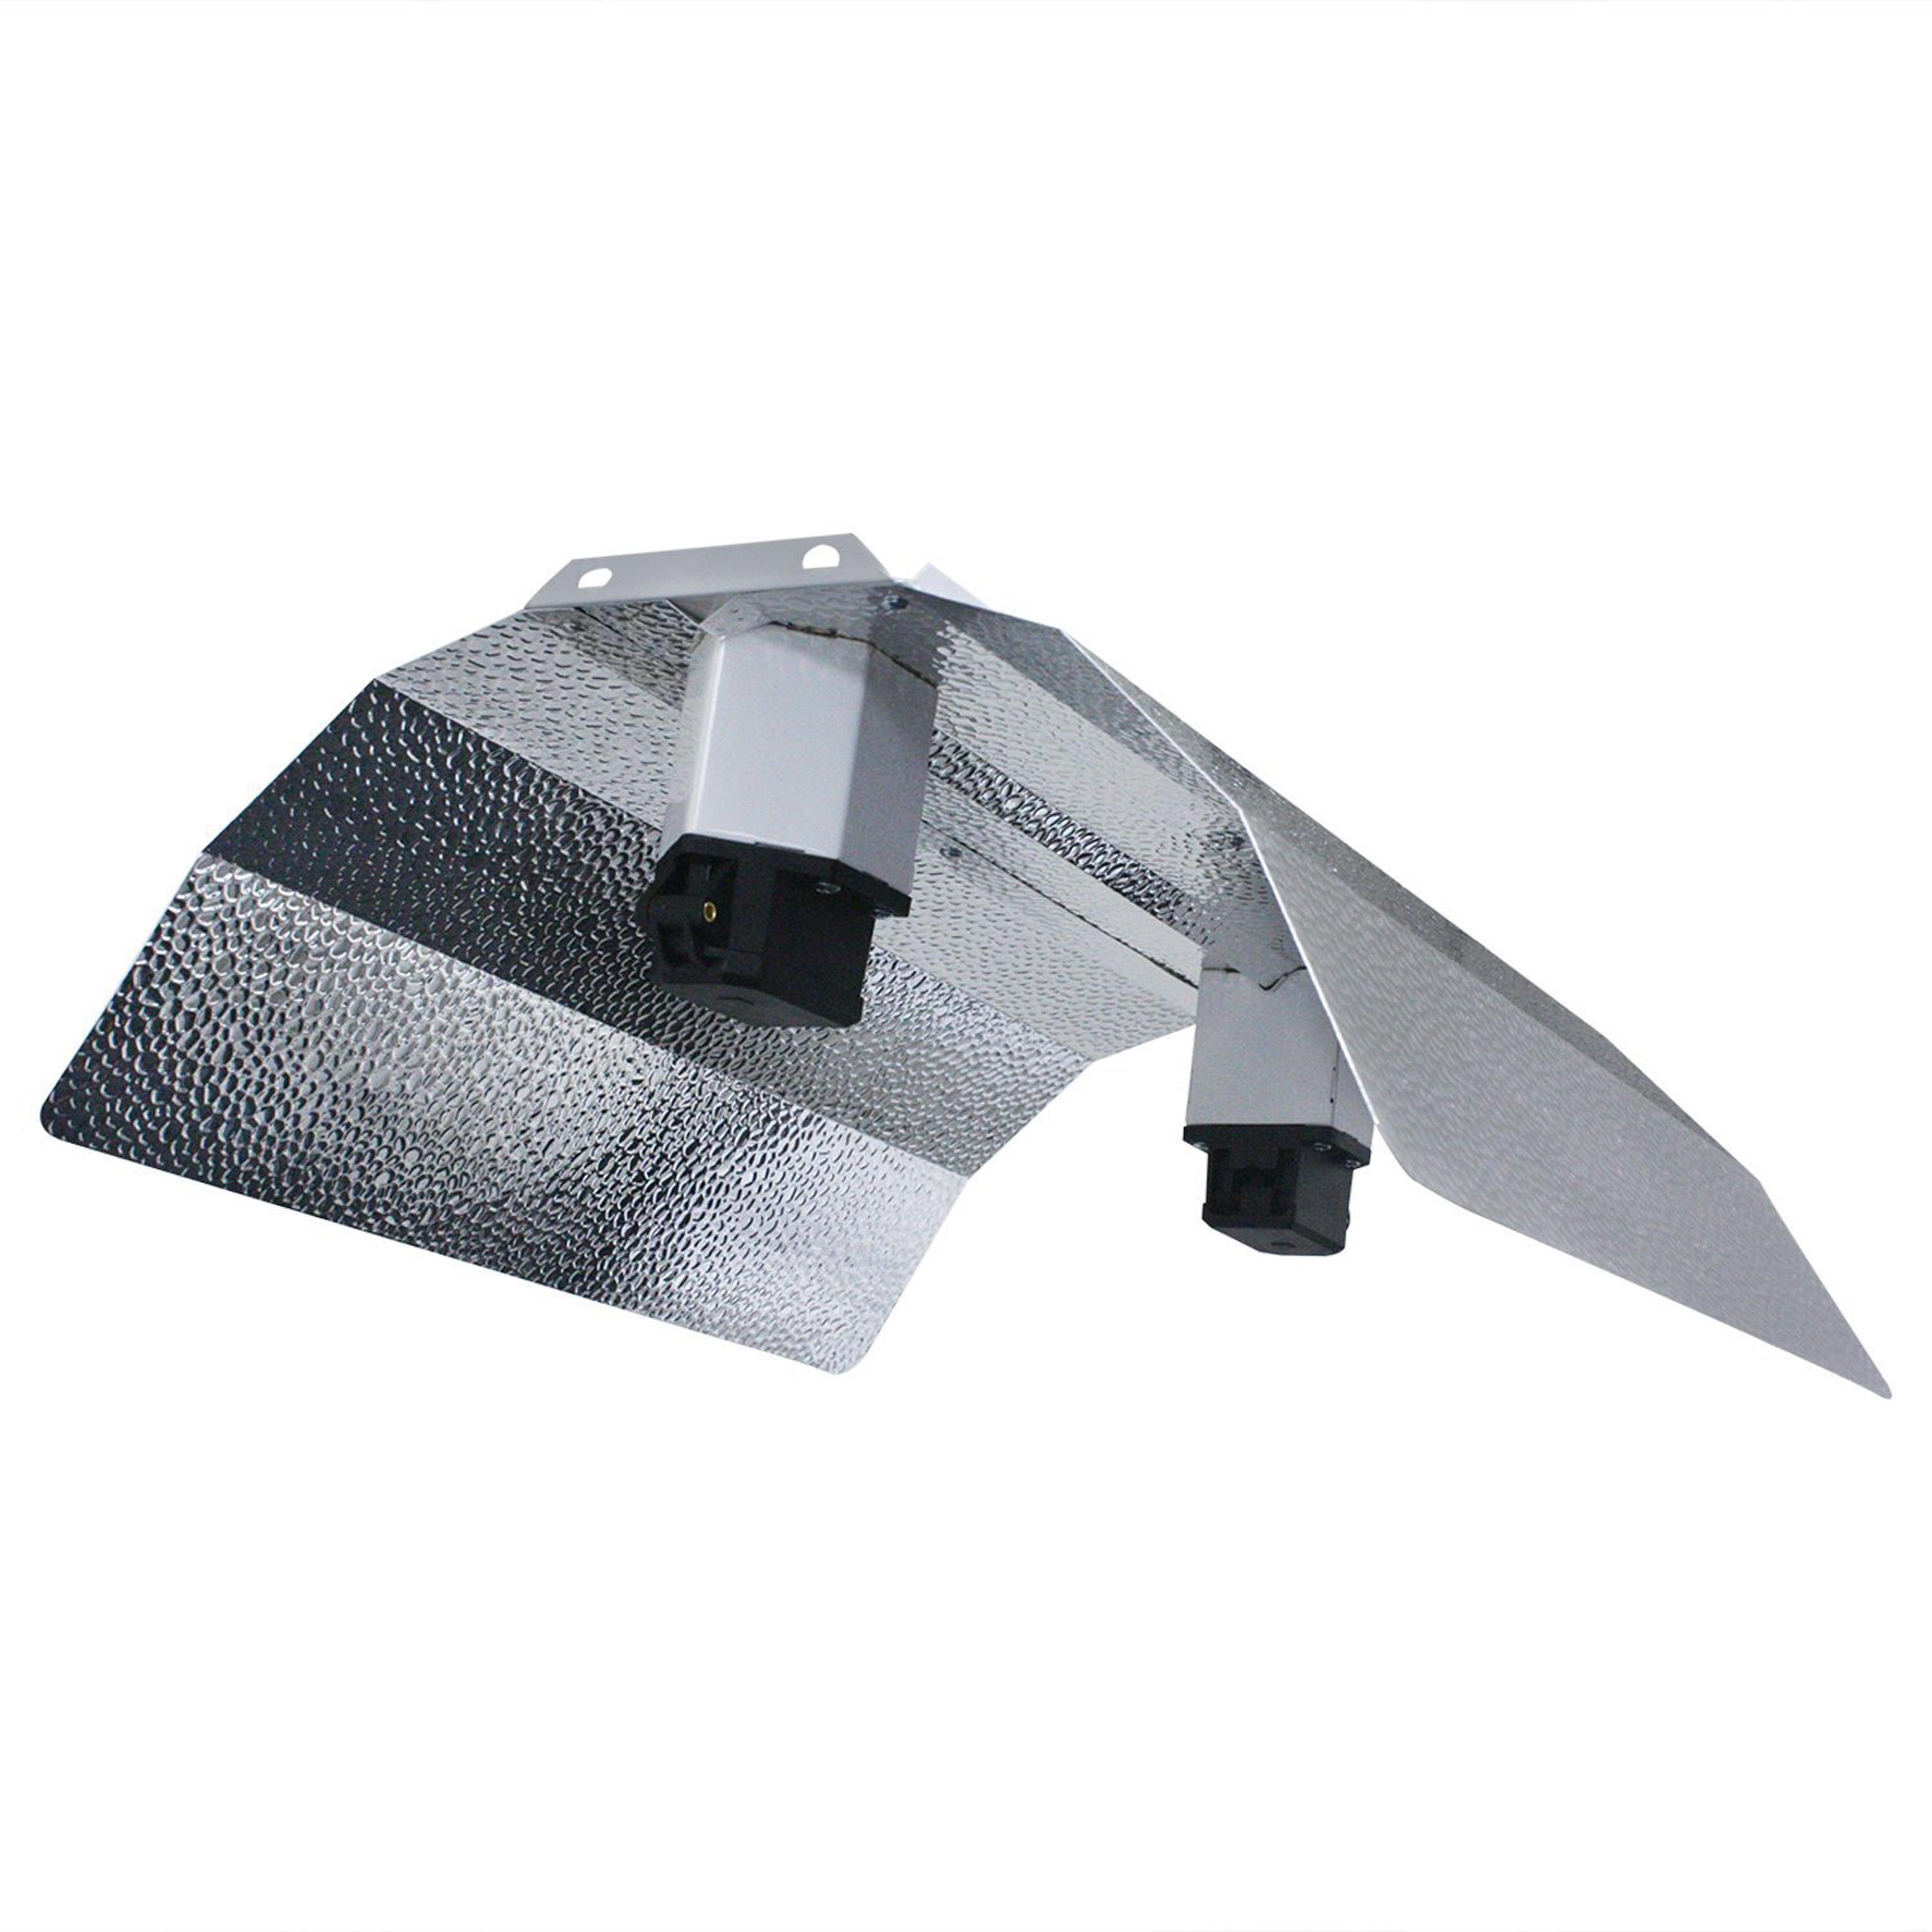 Hydro Crunch™ 18 in. Double Ended DE Basic Wing Grow Light Reflector with Socket and Cord